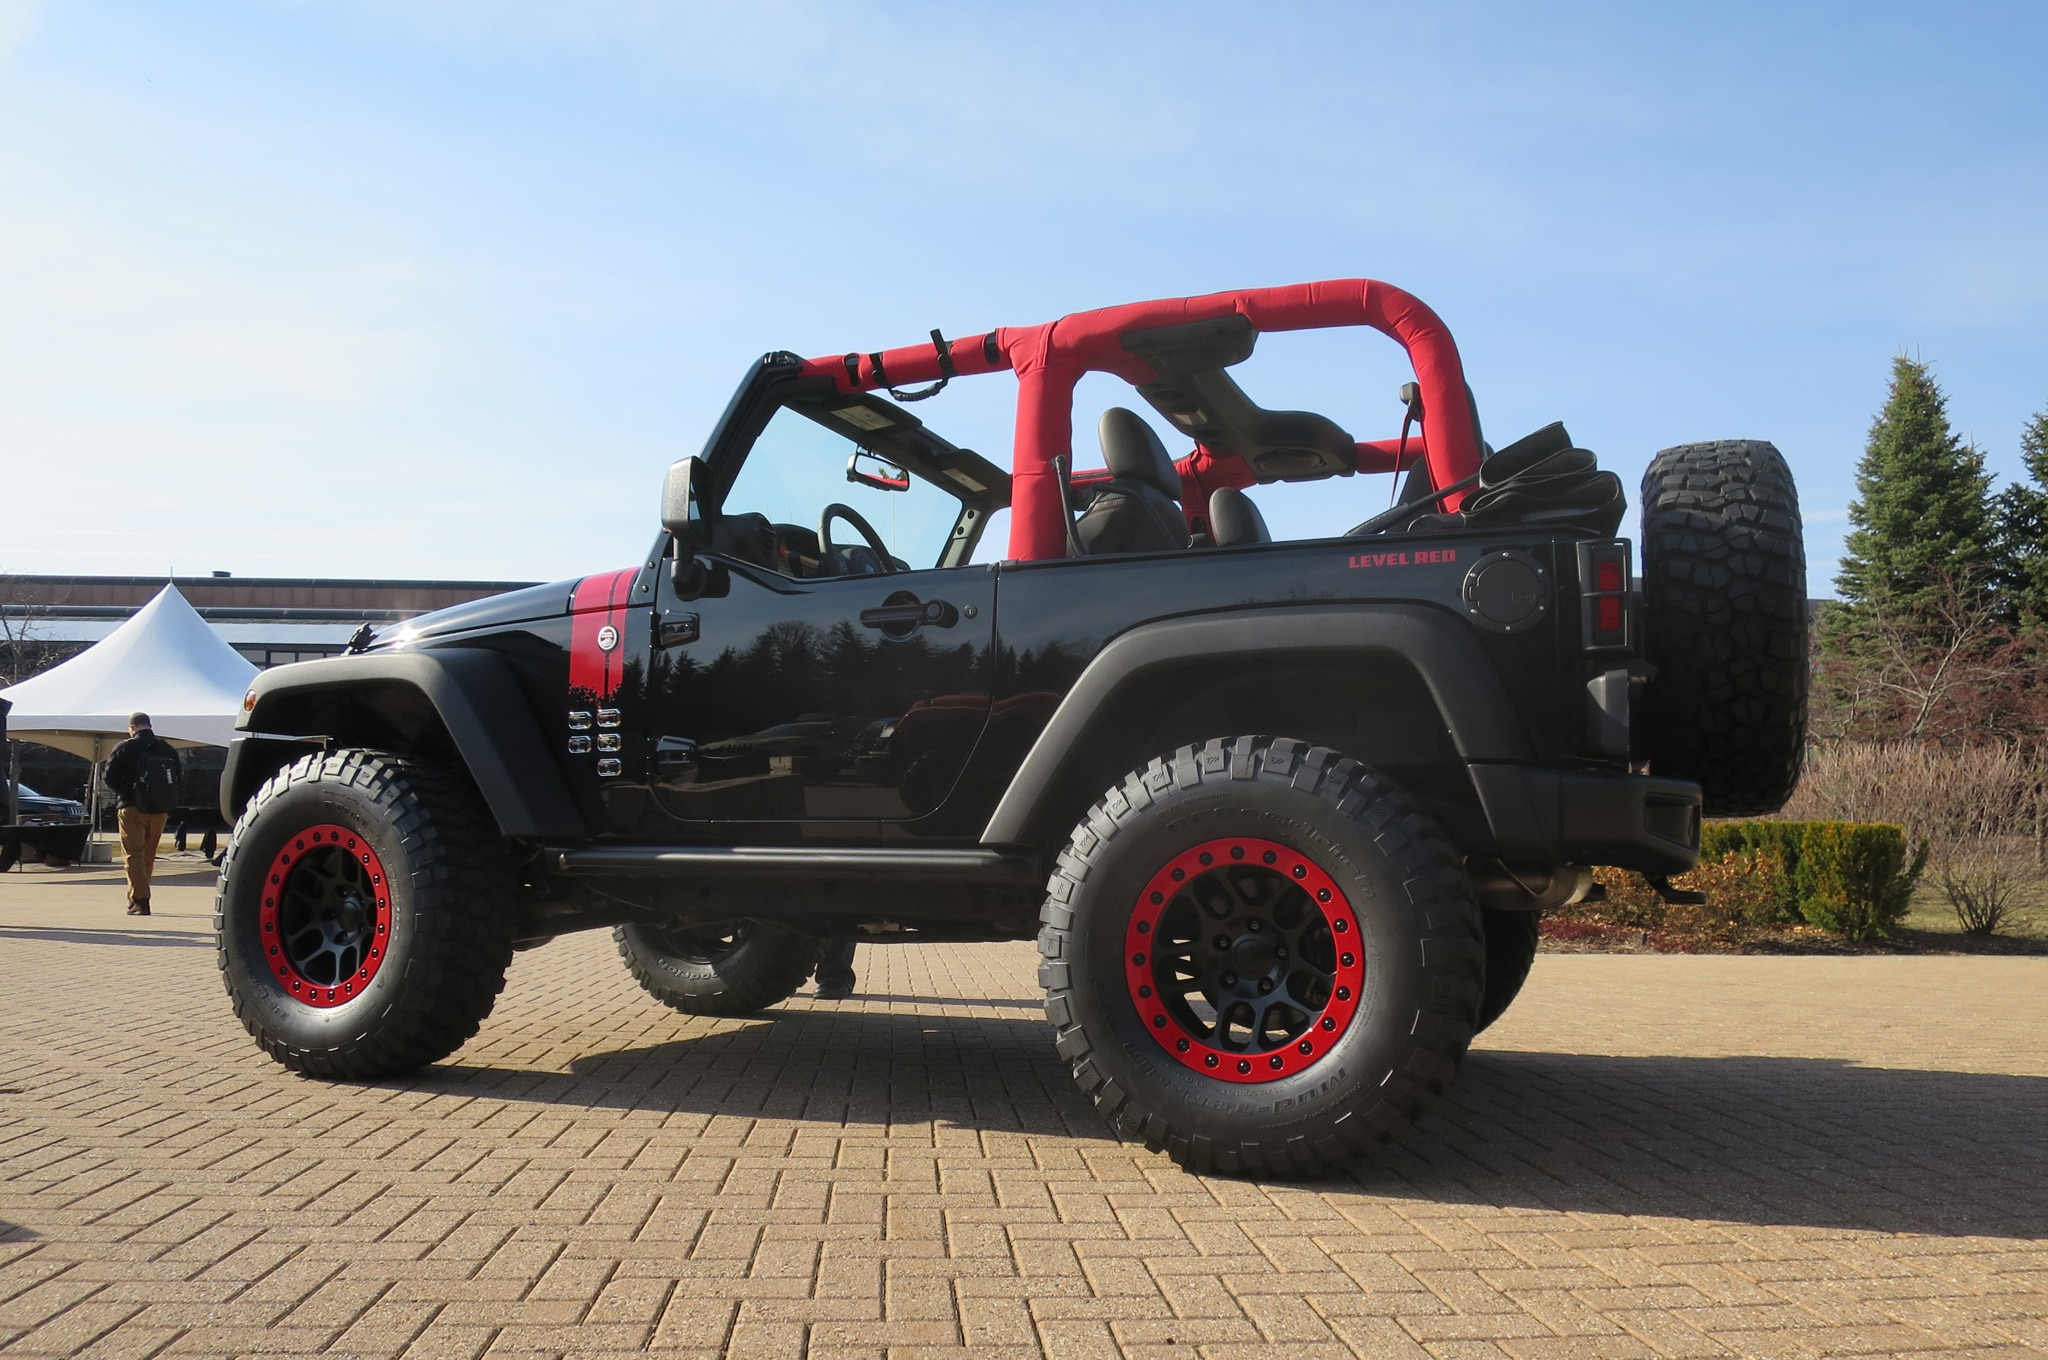 Jeep Wrangler Level Red Concept rear three quarters